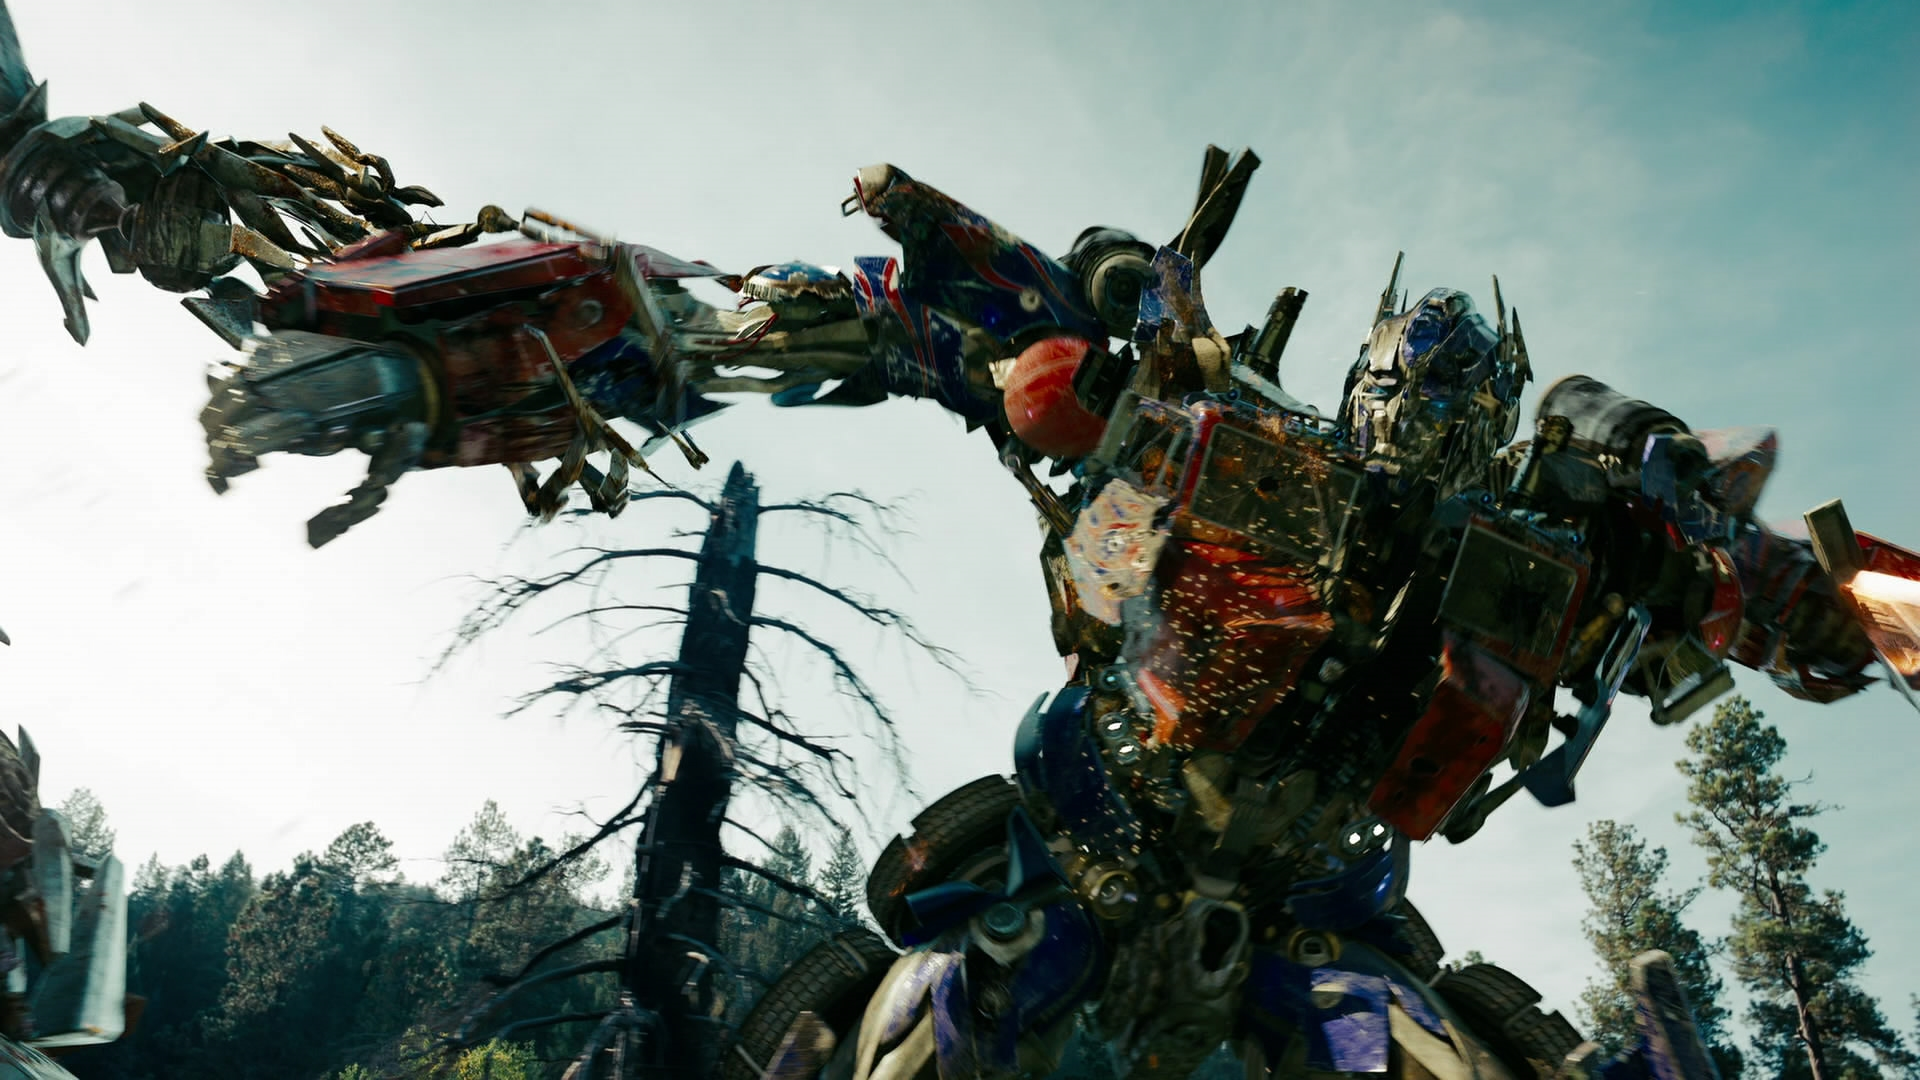 optimus prime picture 1920x1080